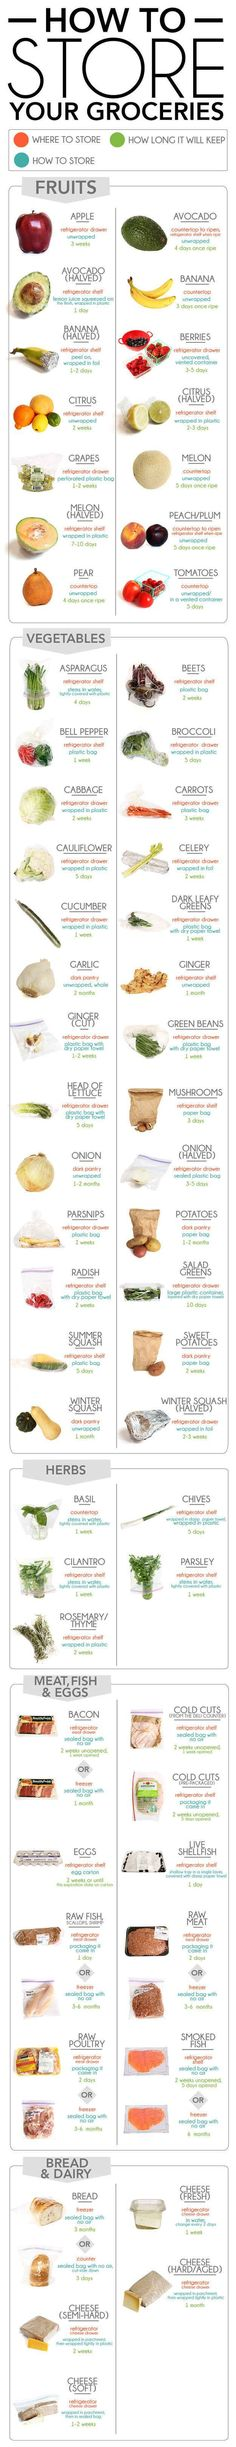 This Infographic tells you how to store groceries (it does include storing meat, but overall it's a great reference!)